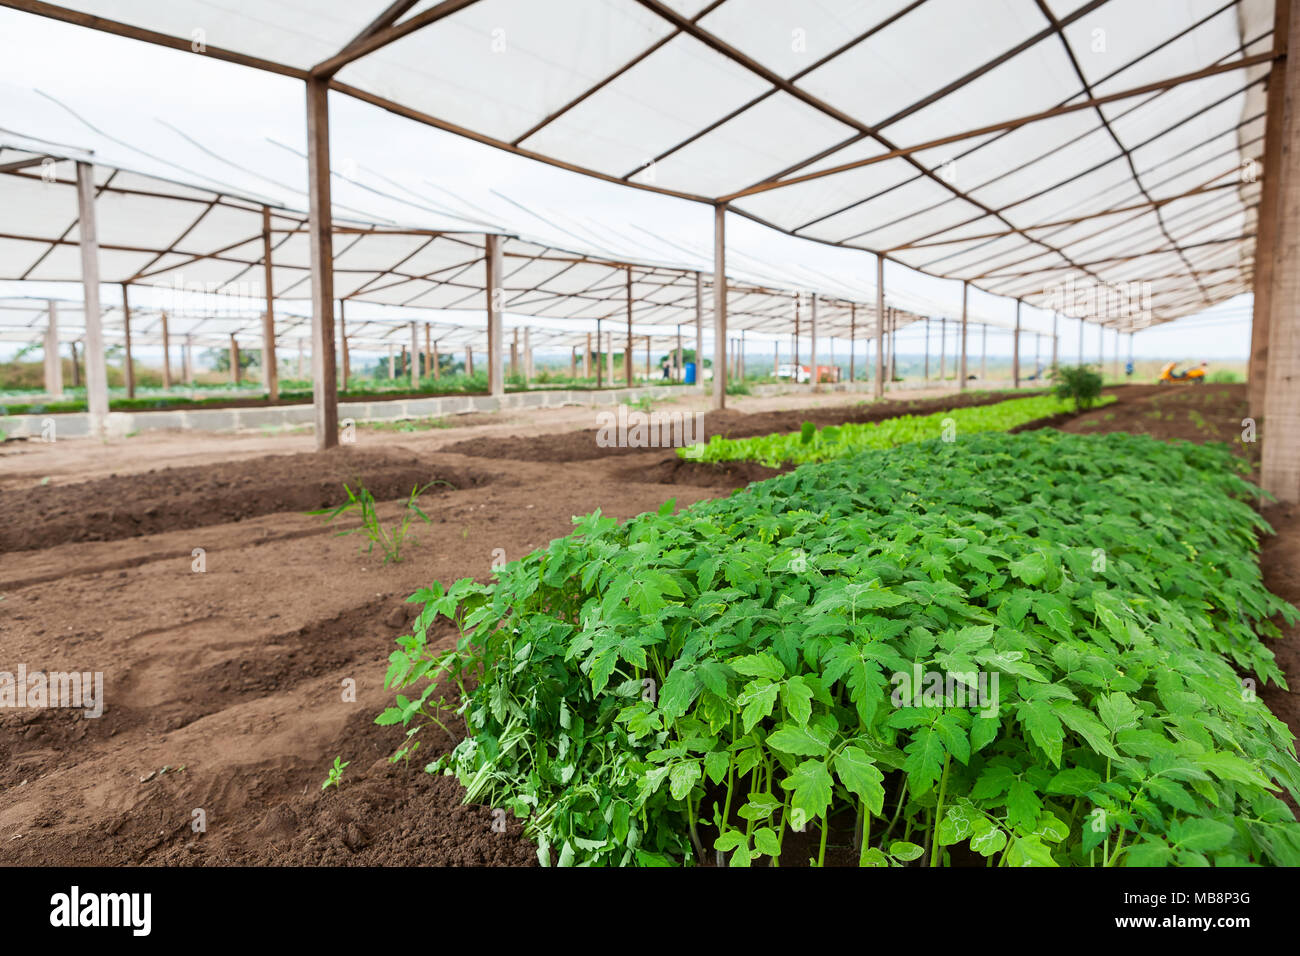 Inside view of greenhouse with plantation. - Stock Image